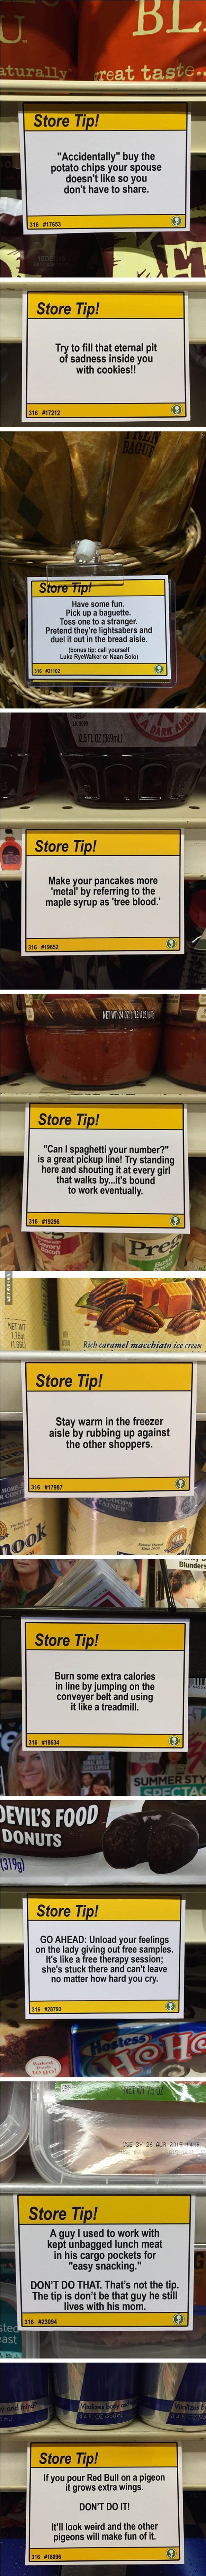 "Guy Leaves Hilarious ""Shopping Tips"" In Grocery Store"